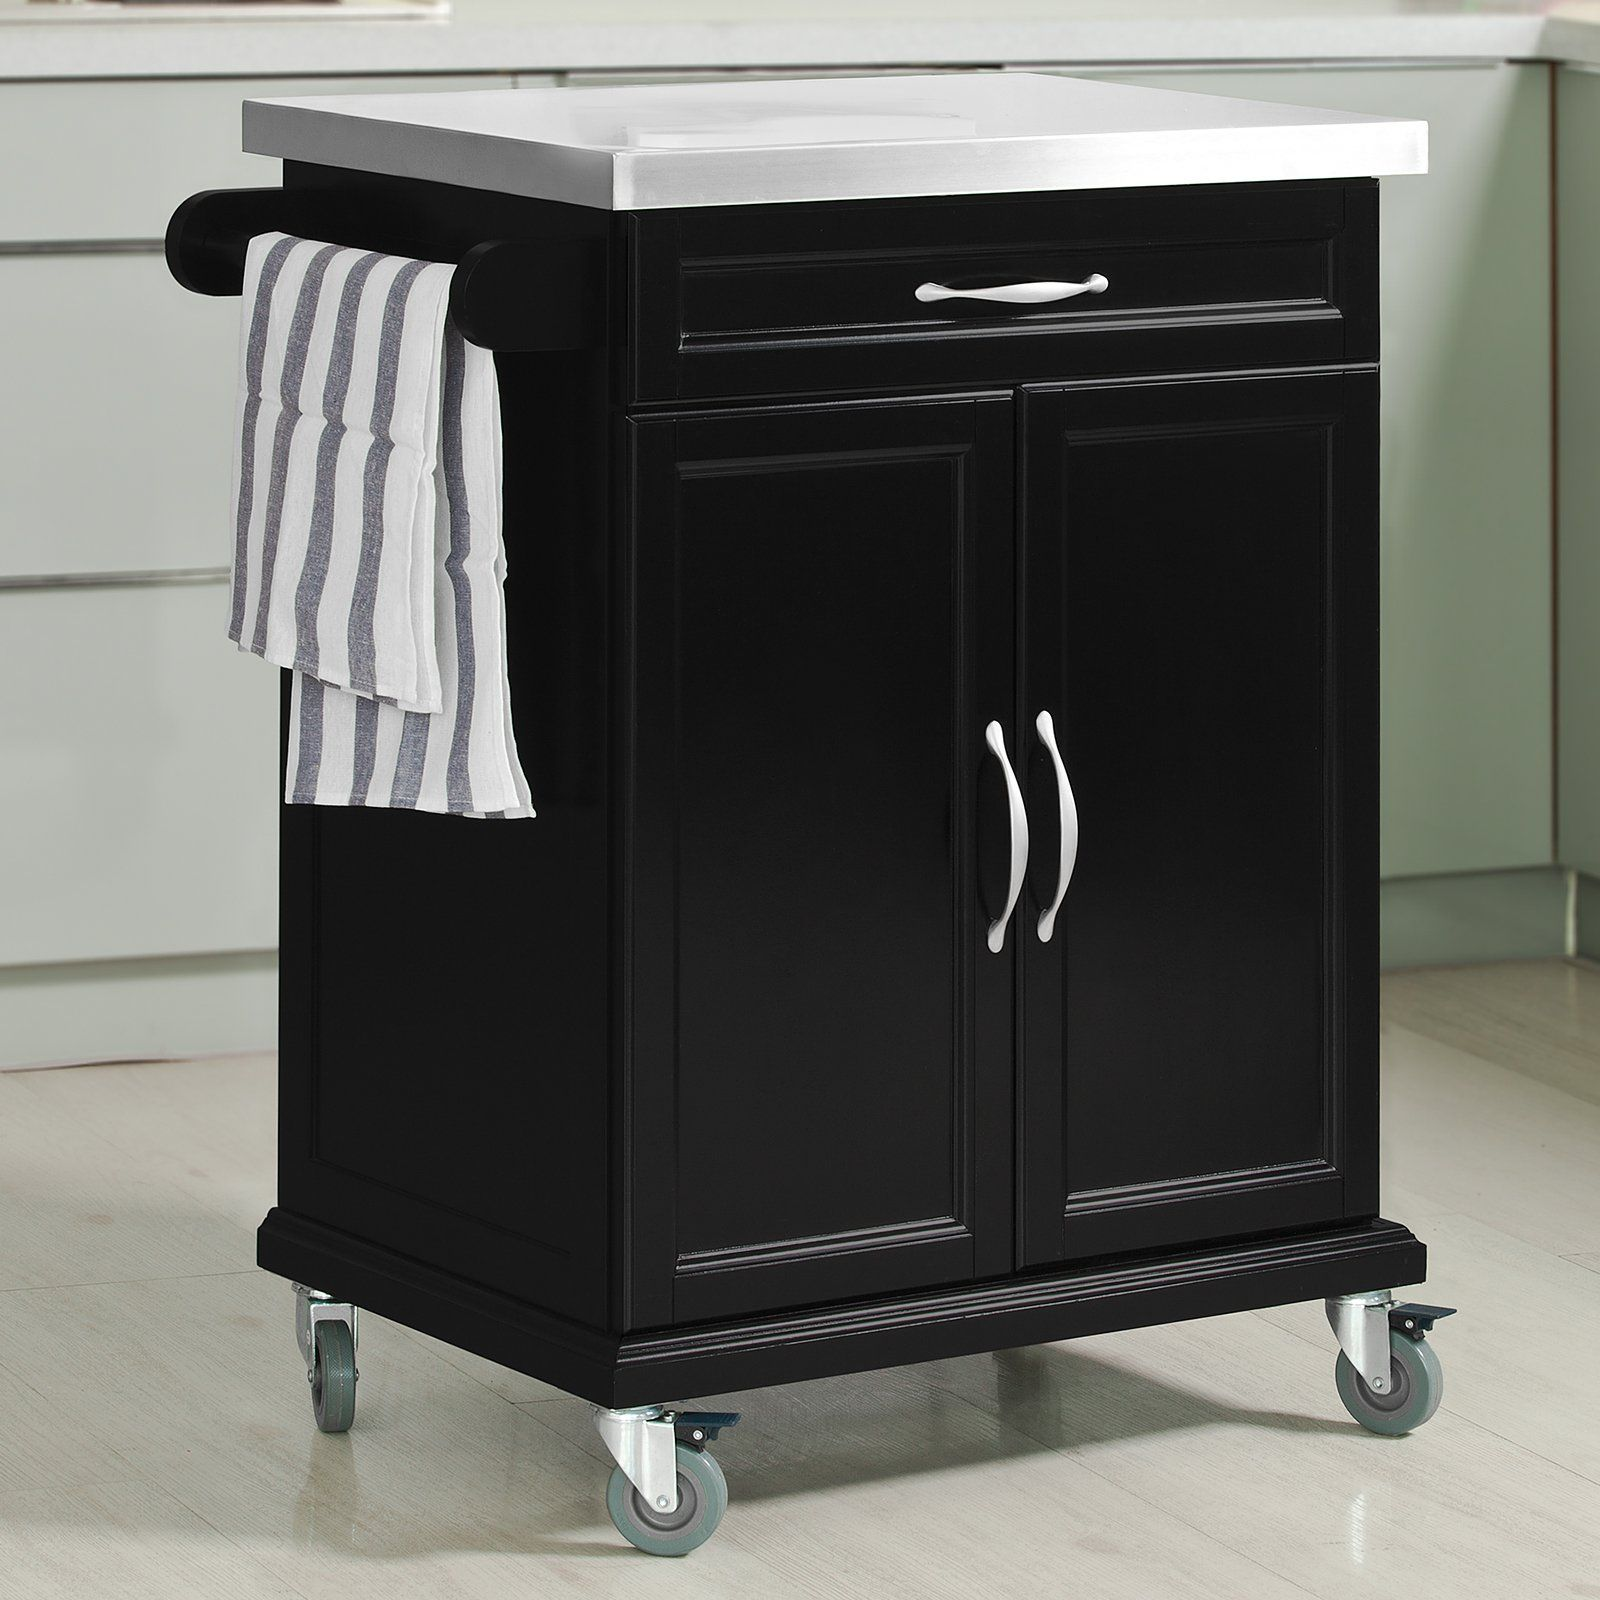 Sobuy Wood Kitchen Cabinet Kitchen Cart Island Storage Trolley With Stainless Steel Surfa Black Kitchen Storage Kitchen Storage Trolley Wood Kitchen Cabinets